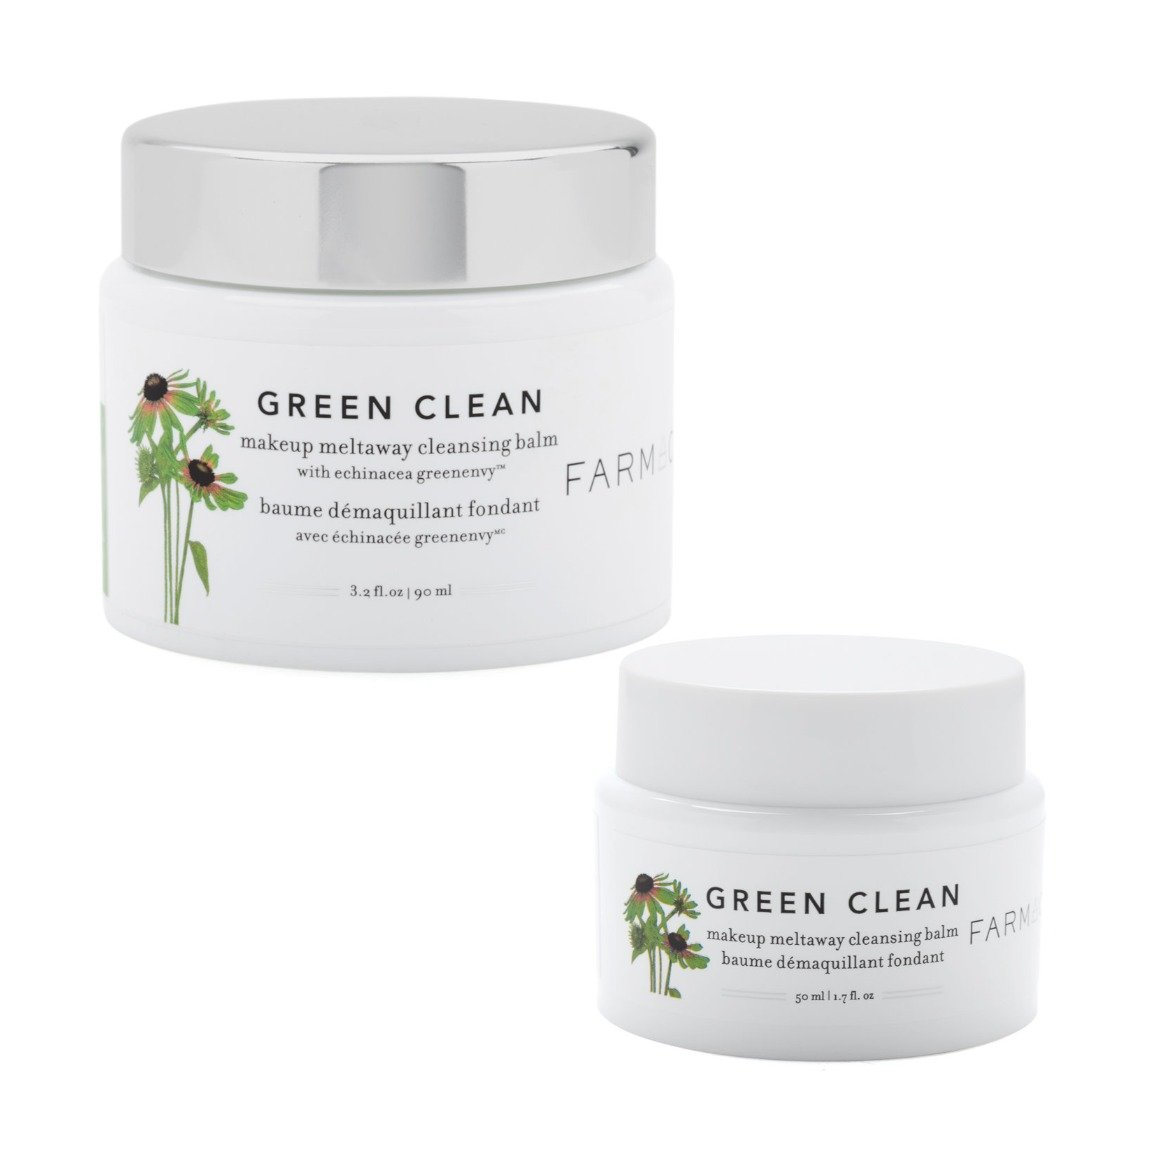 Buy one full-size Green Clean Cleansing Balm, get a free 1.7-oz mini